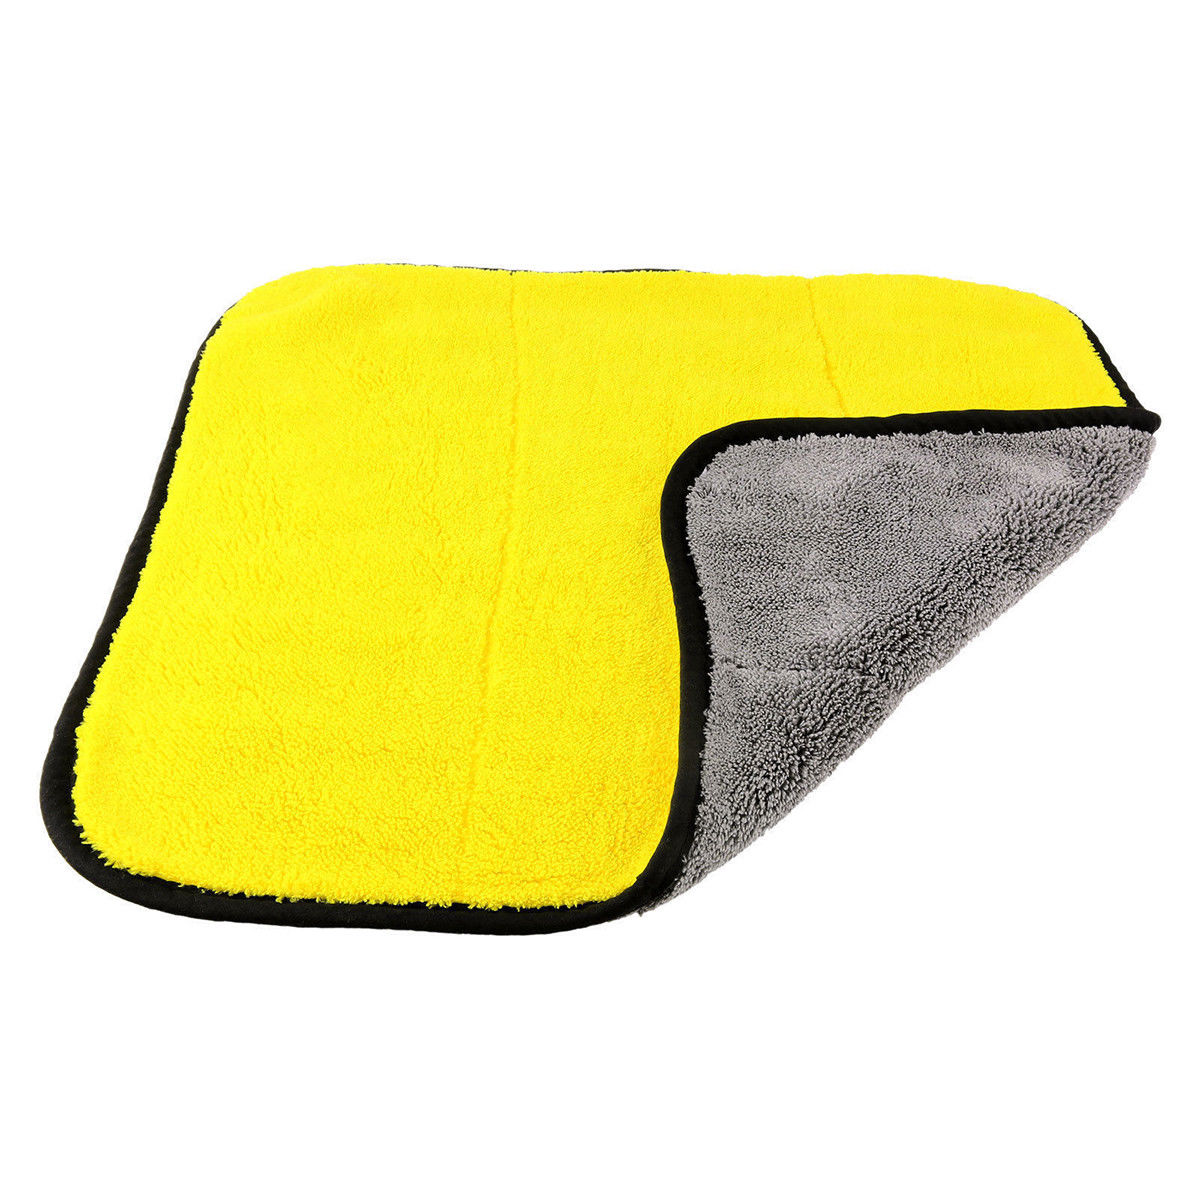 4 Size Super Absorbent Car Wash Cloth Microfiber Towel Cleaning Drying Cloths Rag Detailing Car Towel Car Care Polishing 22